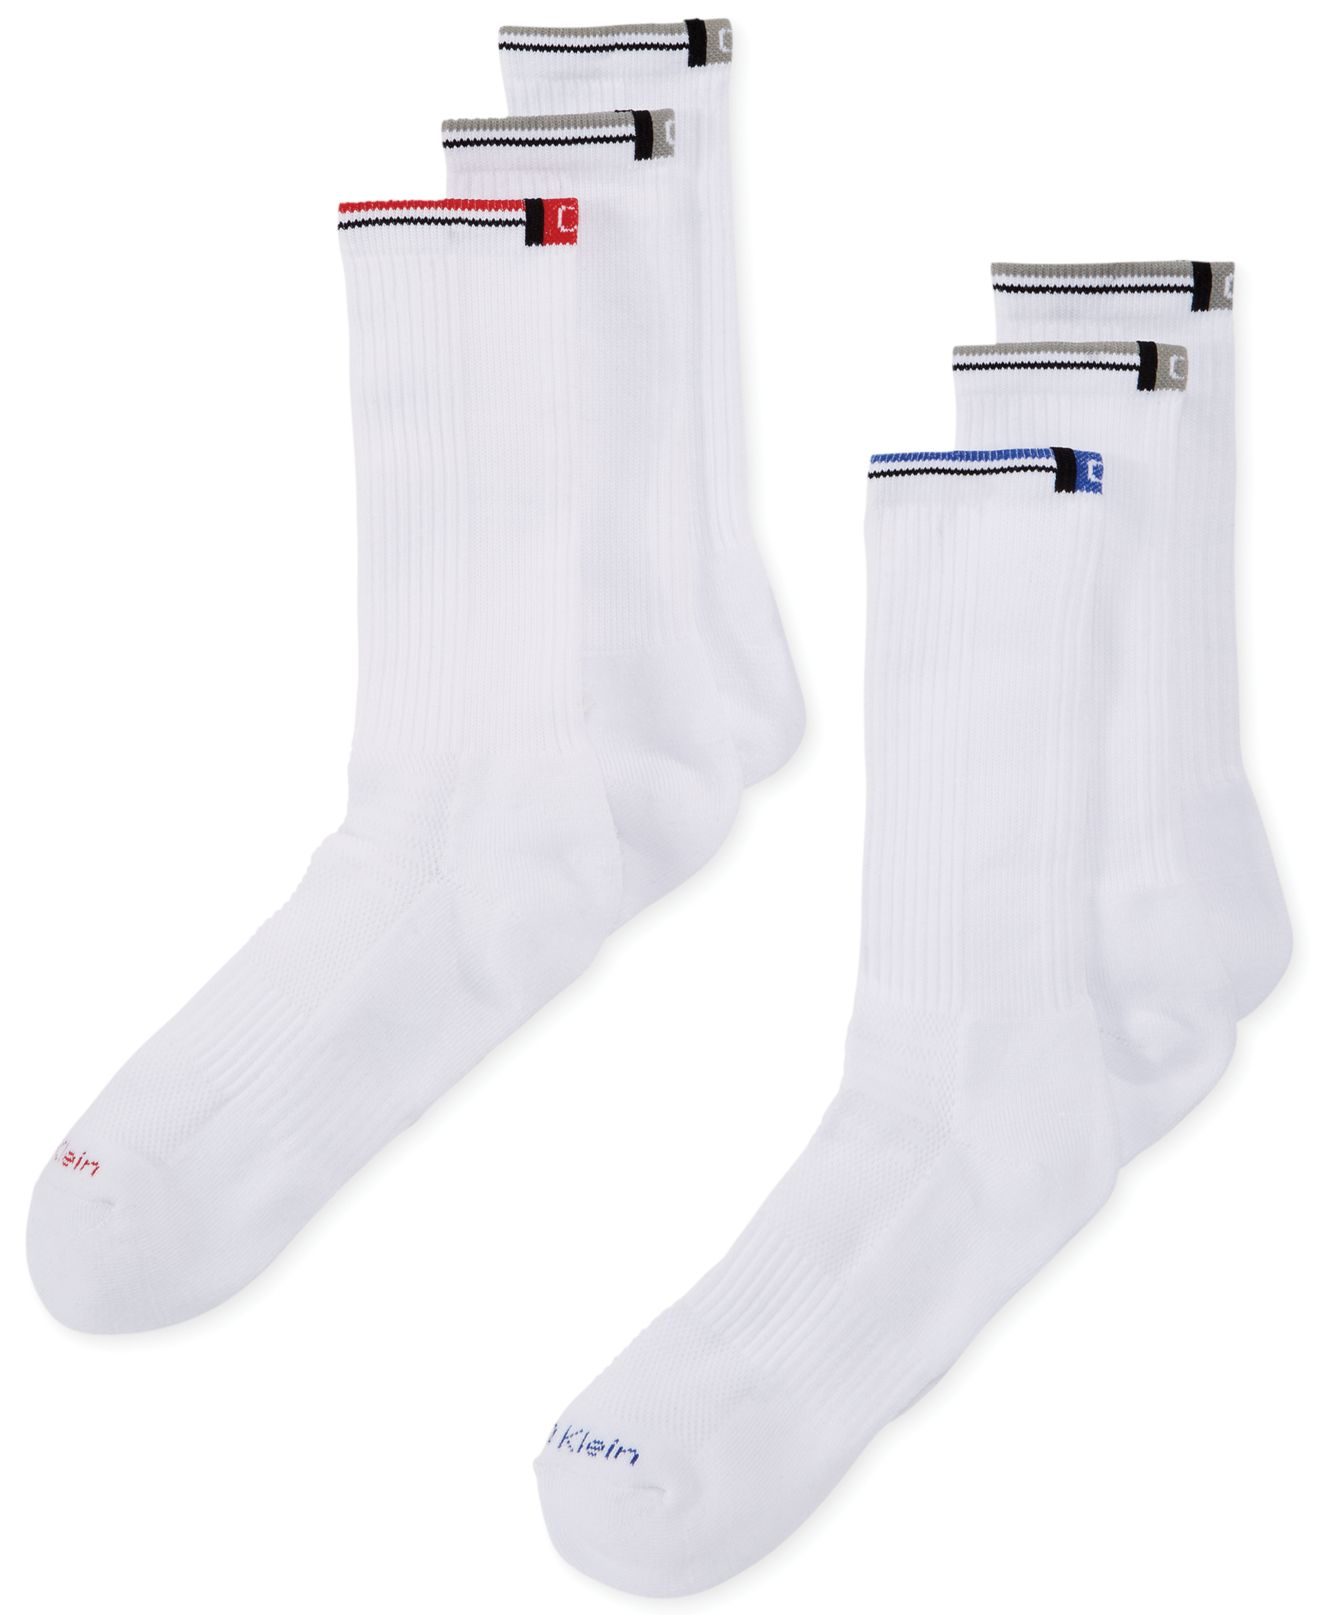 efbf540105a3 Calvin Klein Dress Socks Amazon